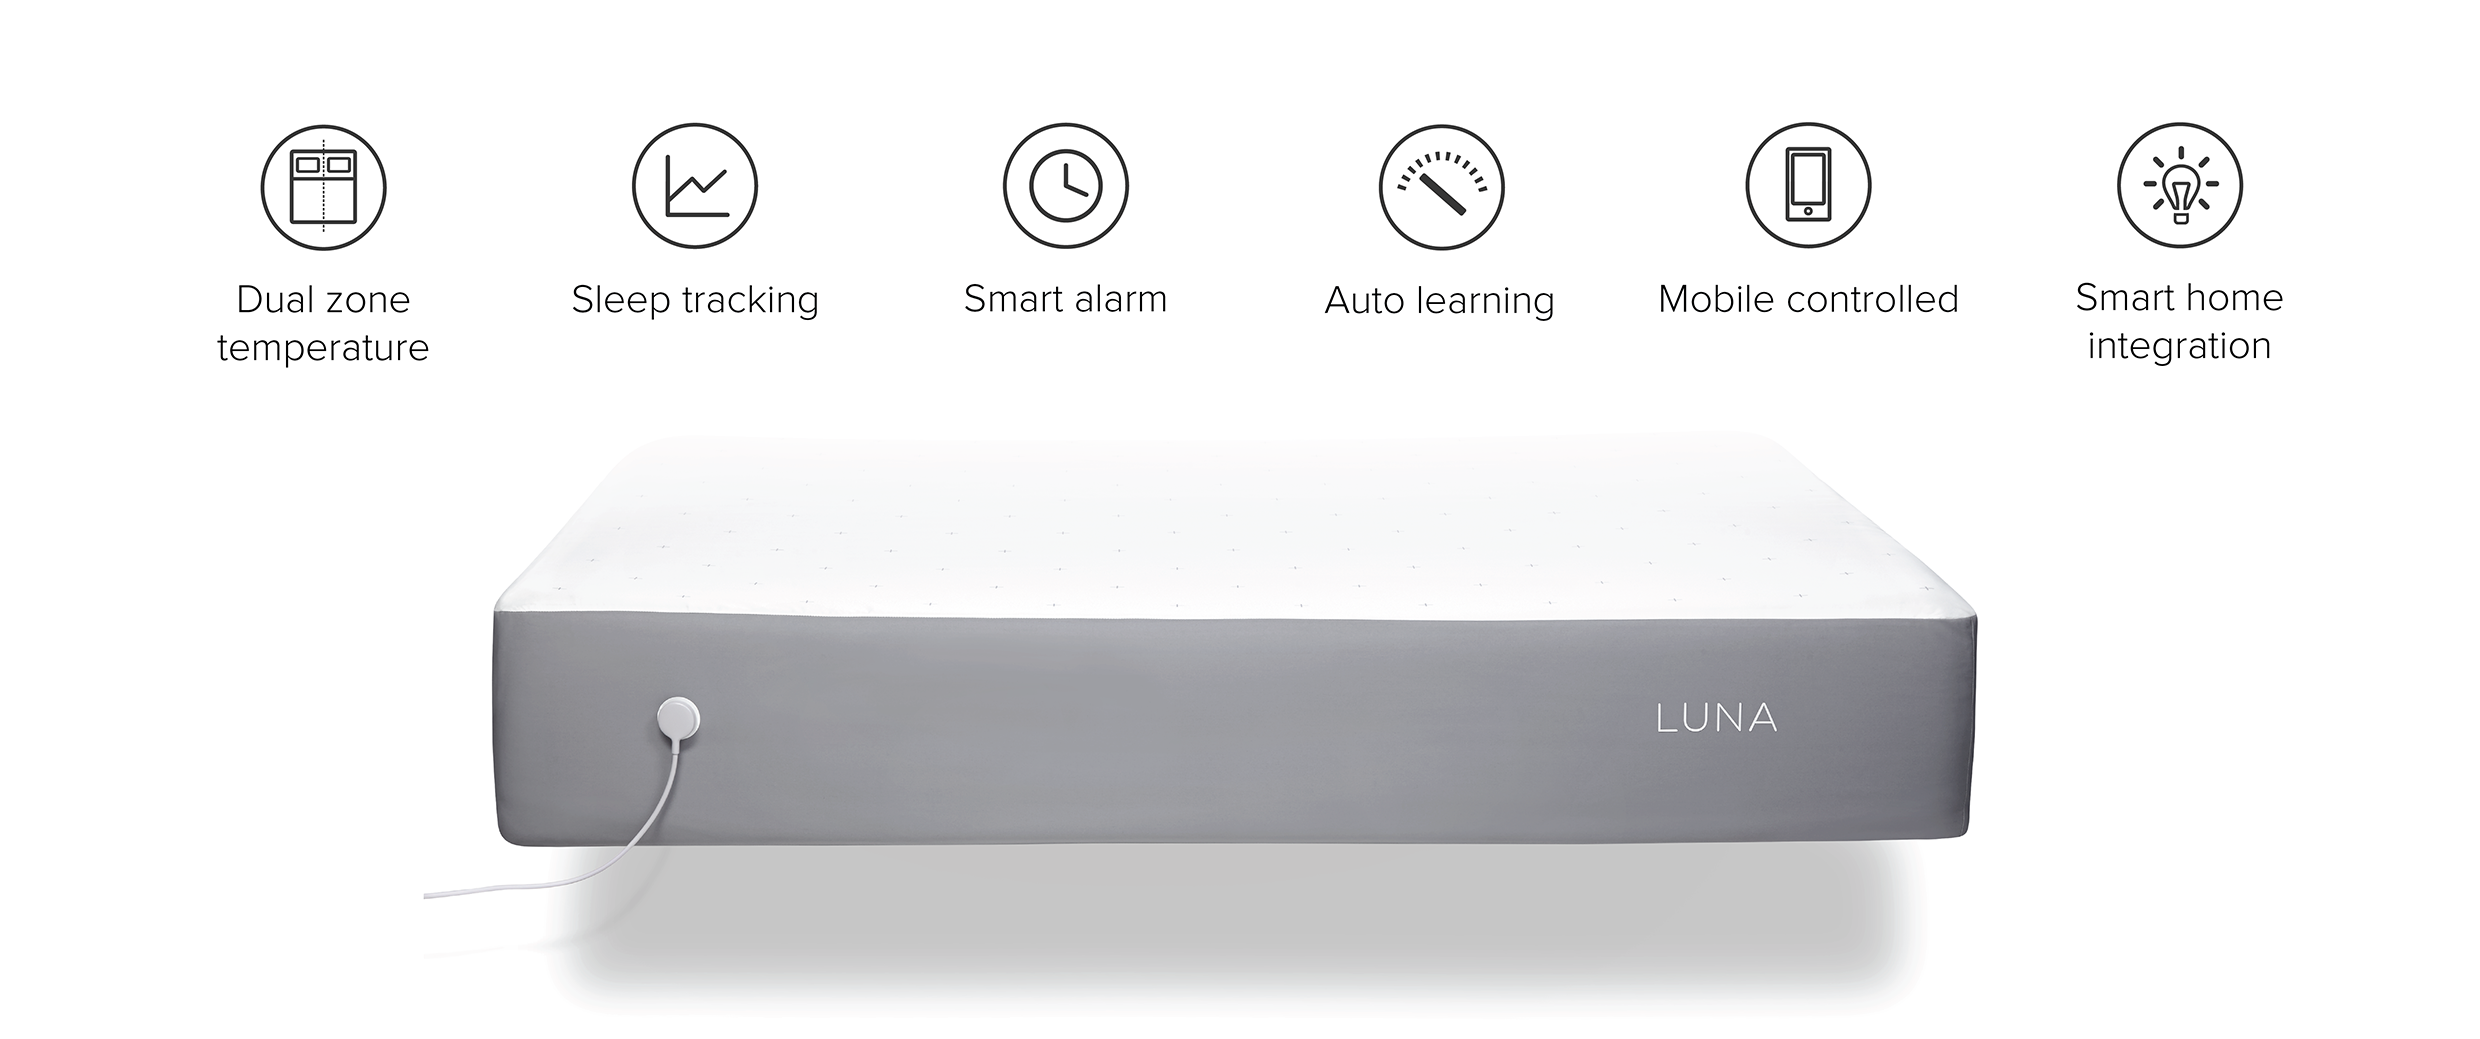 luna smart bed cover smart connected device gadget technology smartphone app data sleep monitor home bedroom